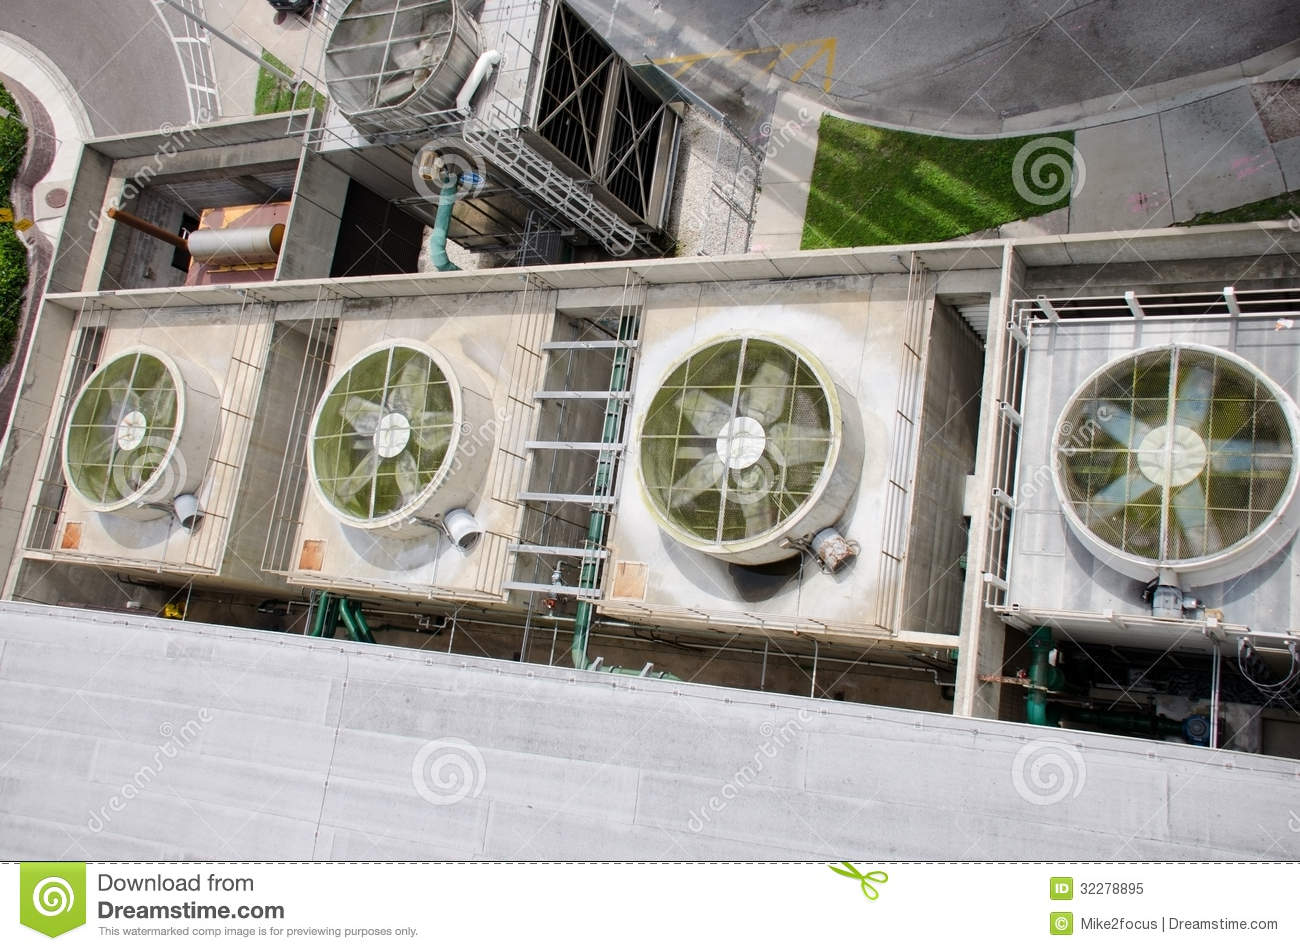 Huge Industrial Fans On Building Air Conditioner Stock